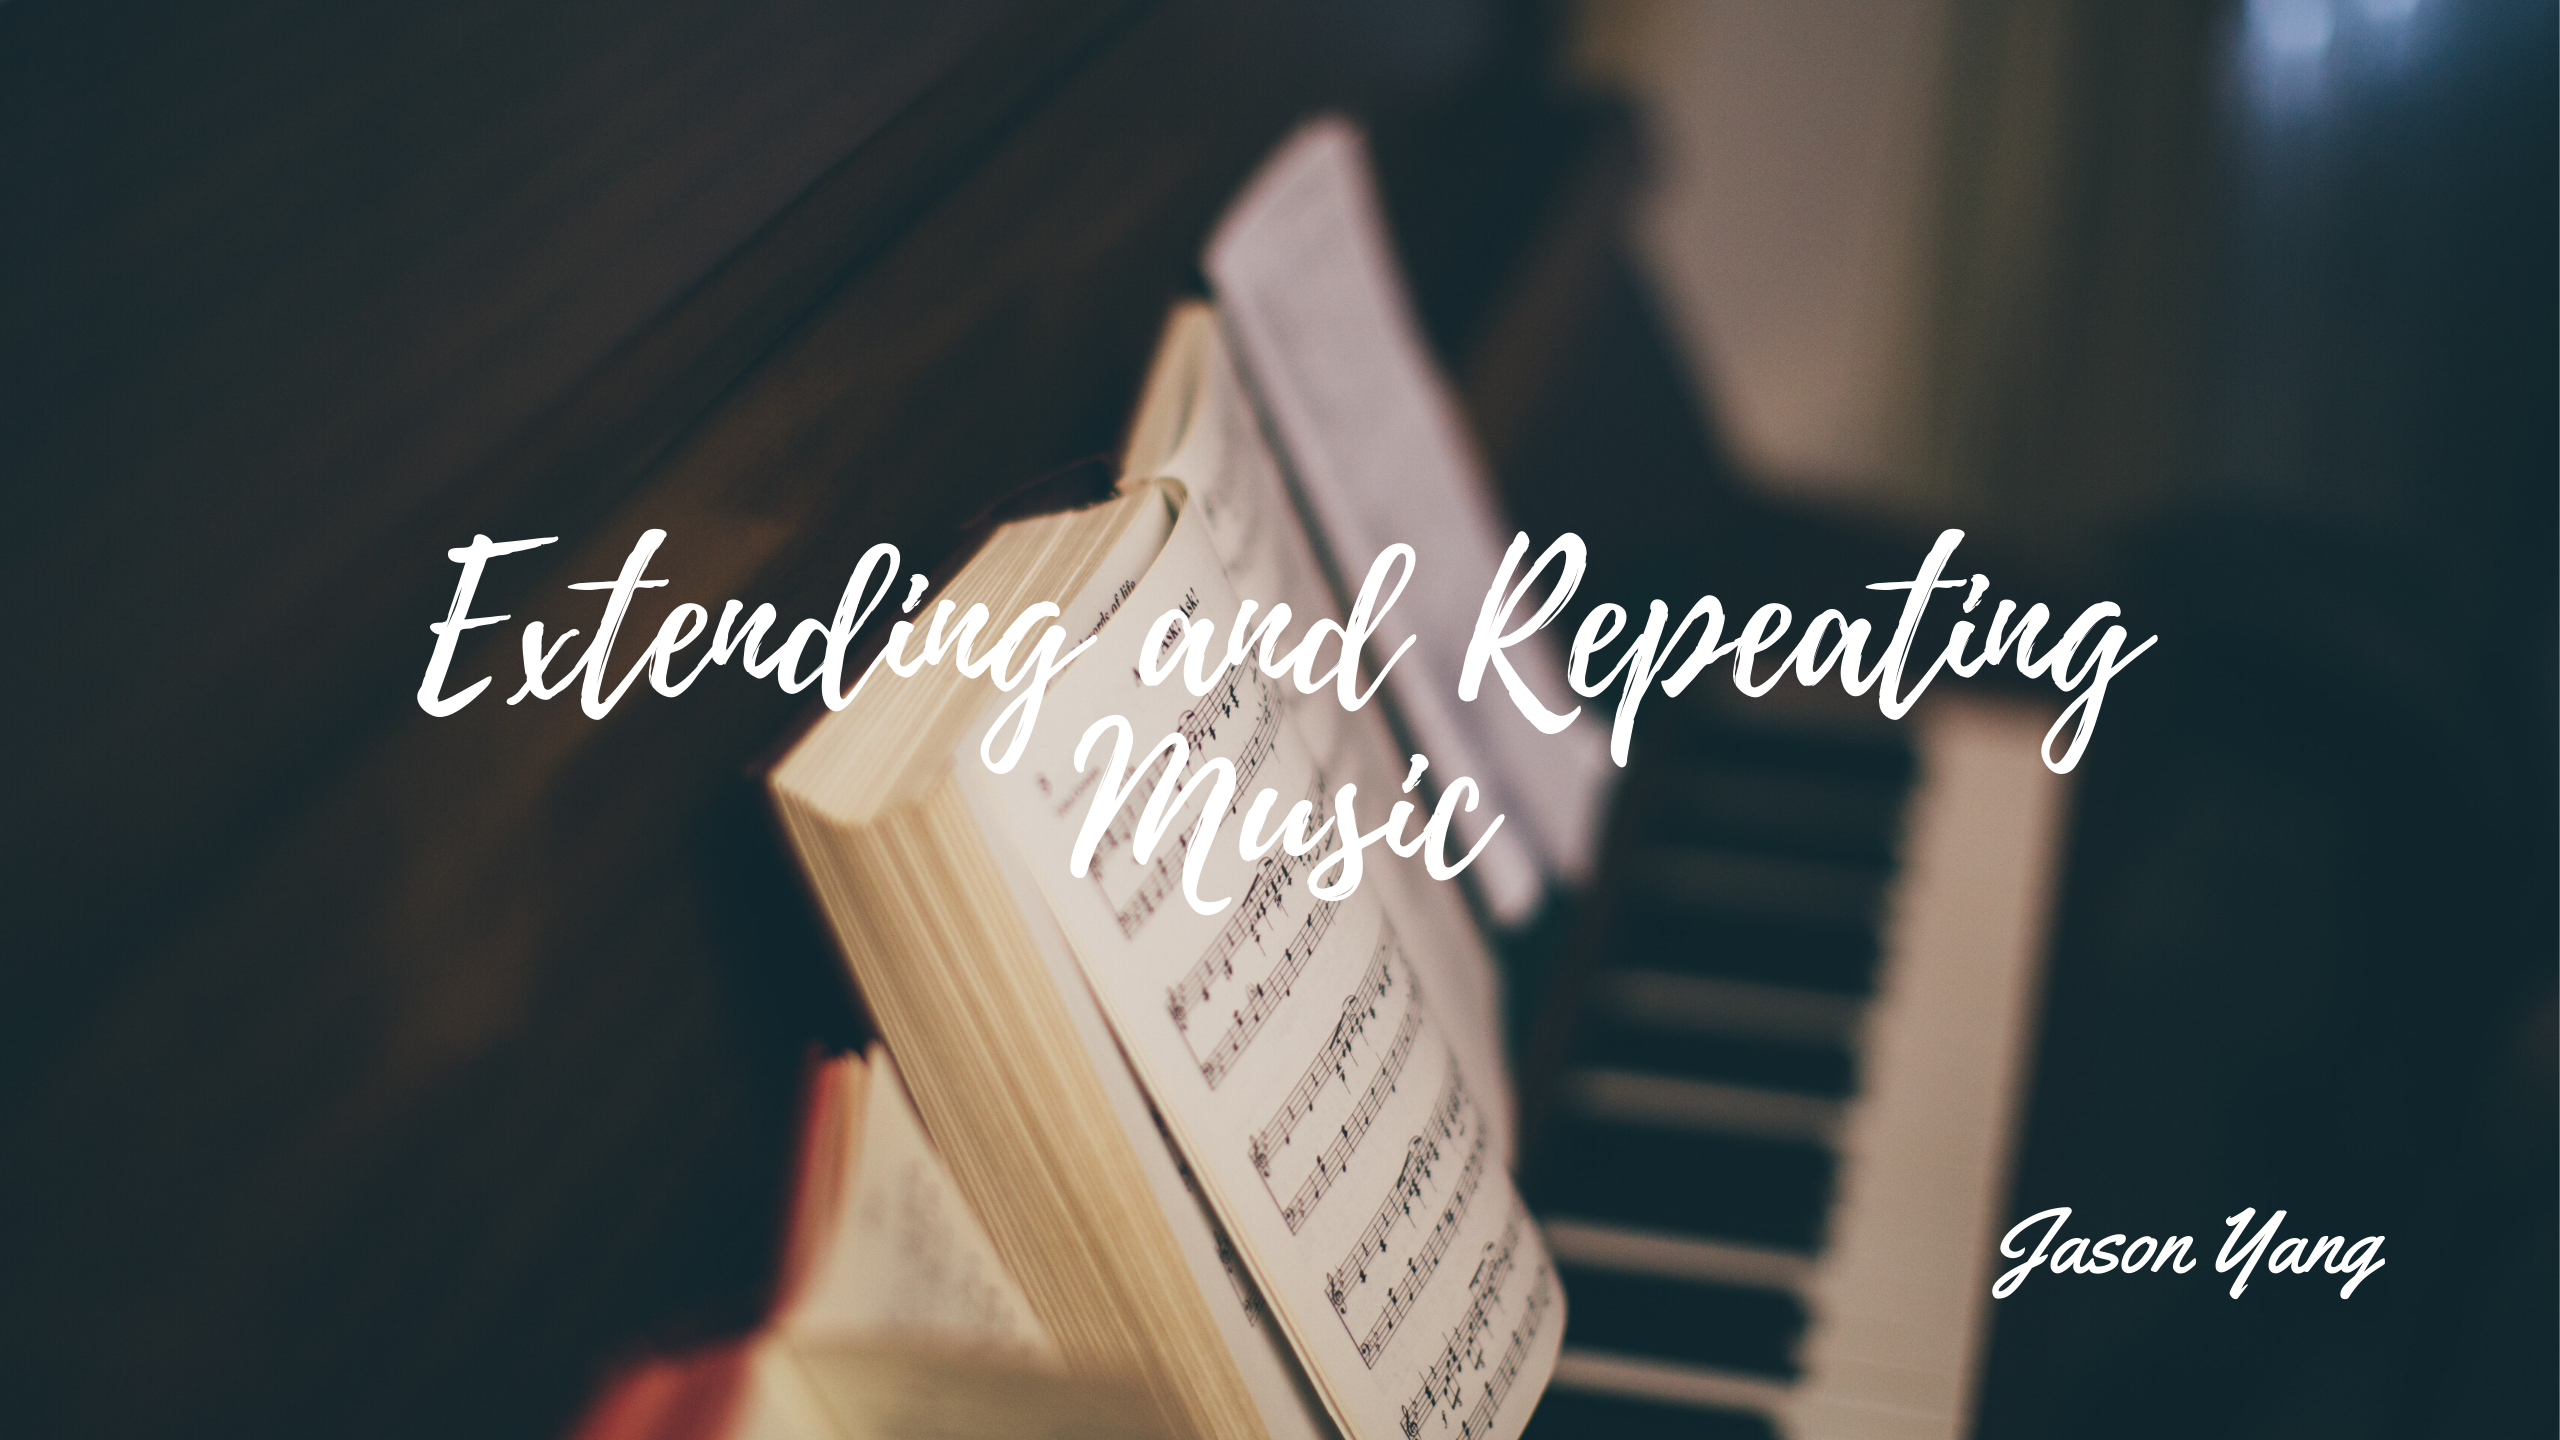 Extending and Repeating notes - Jason Yang Pianist